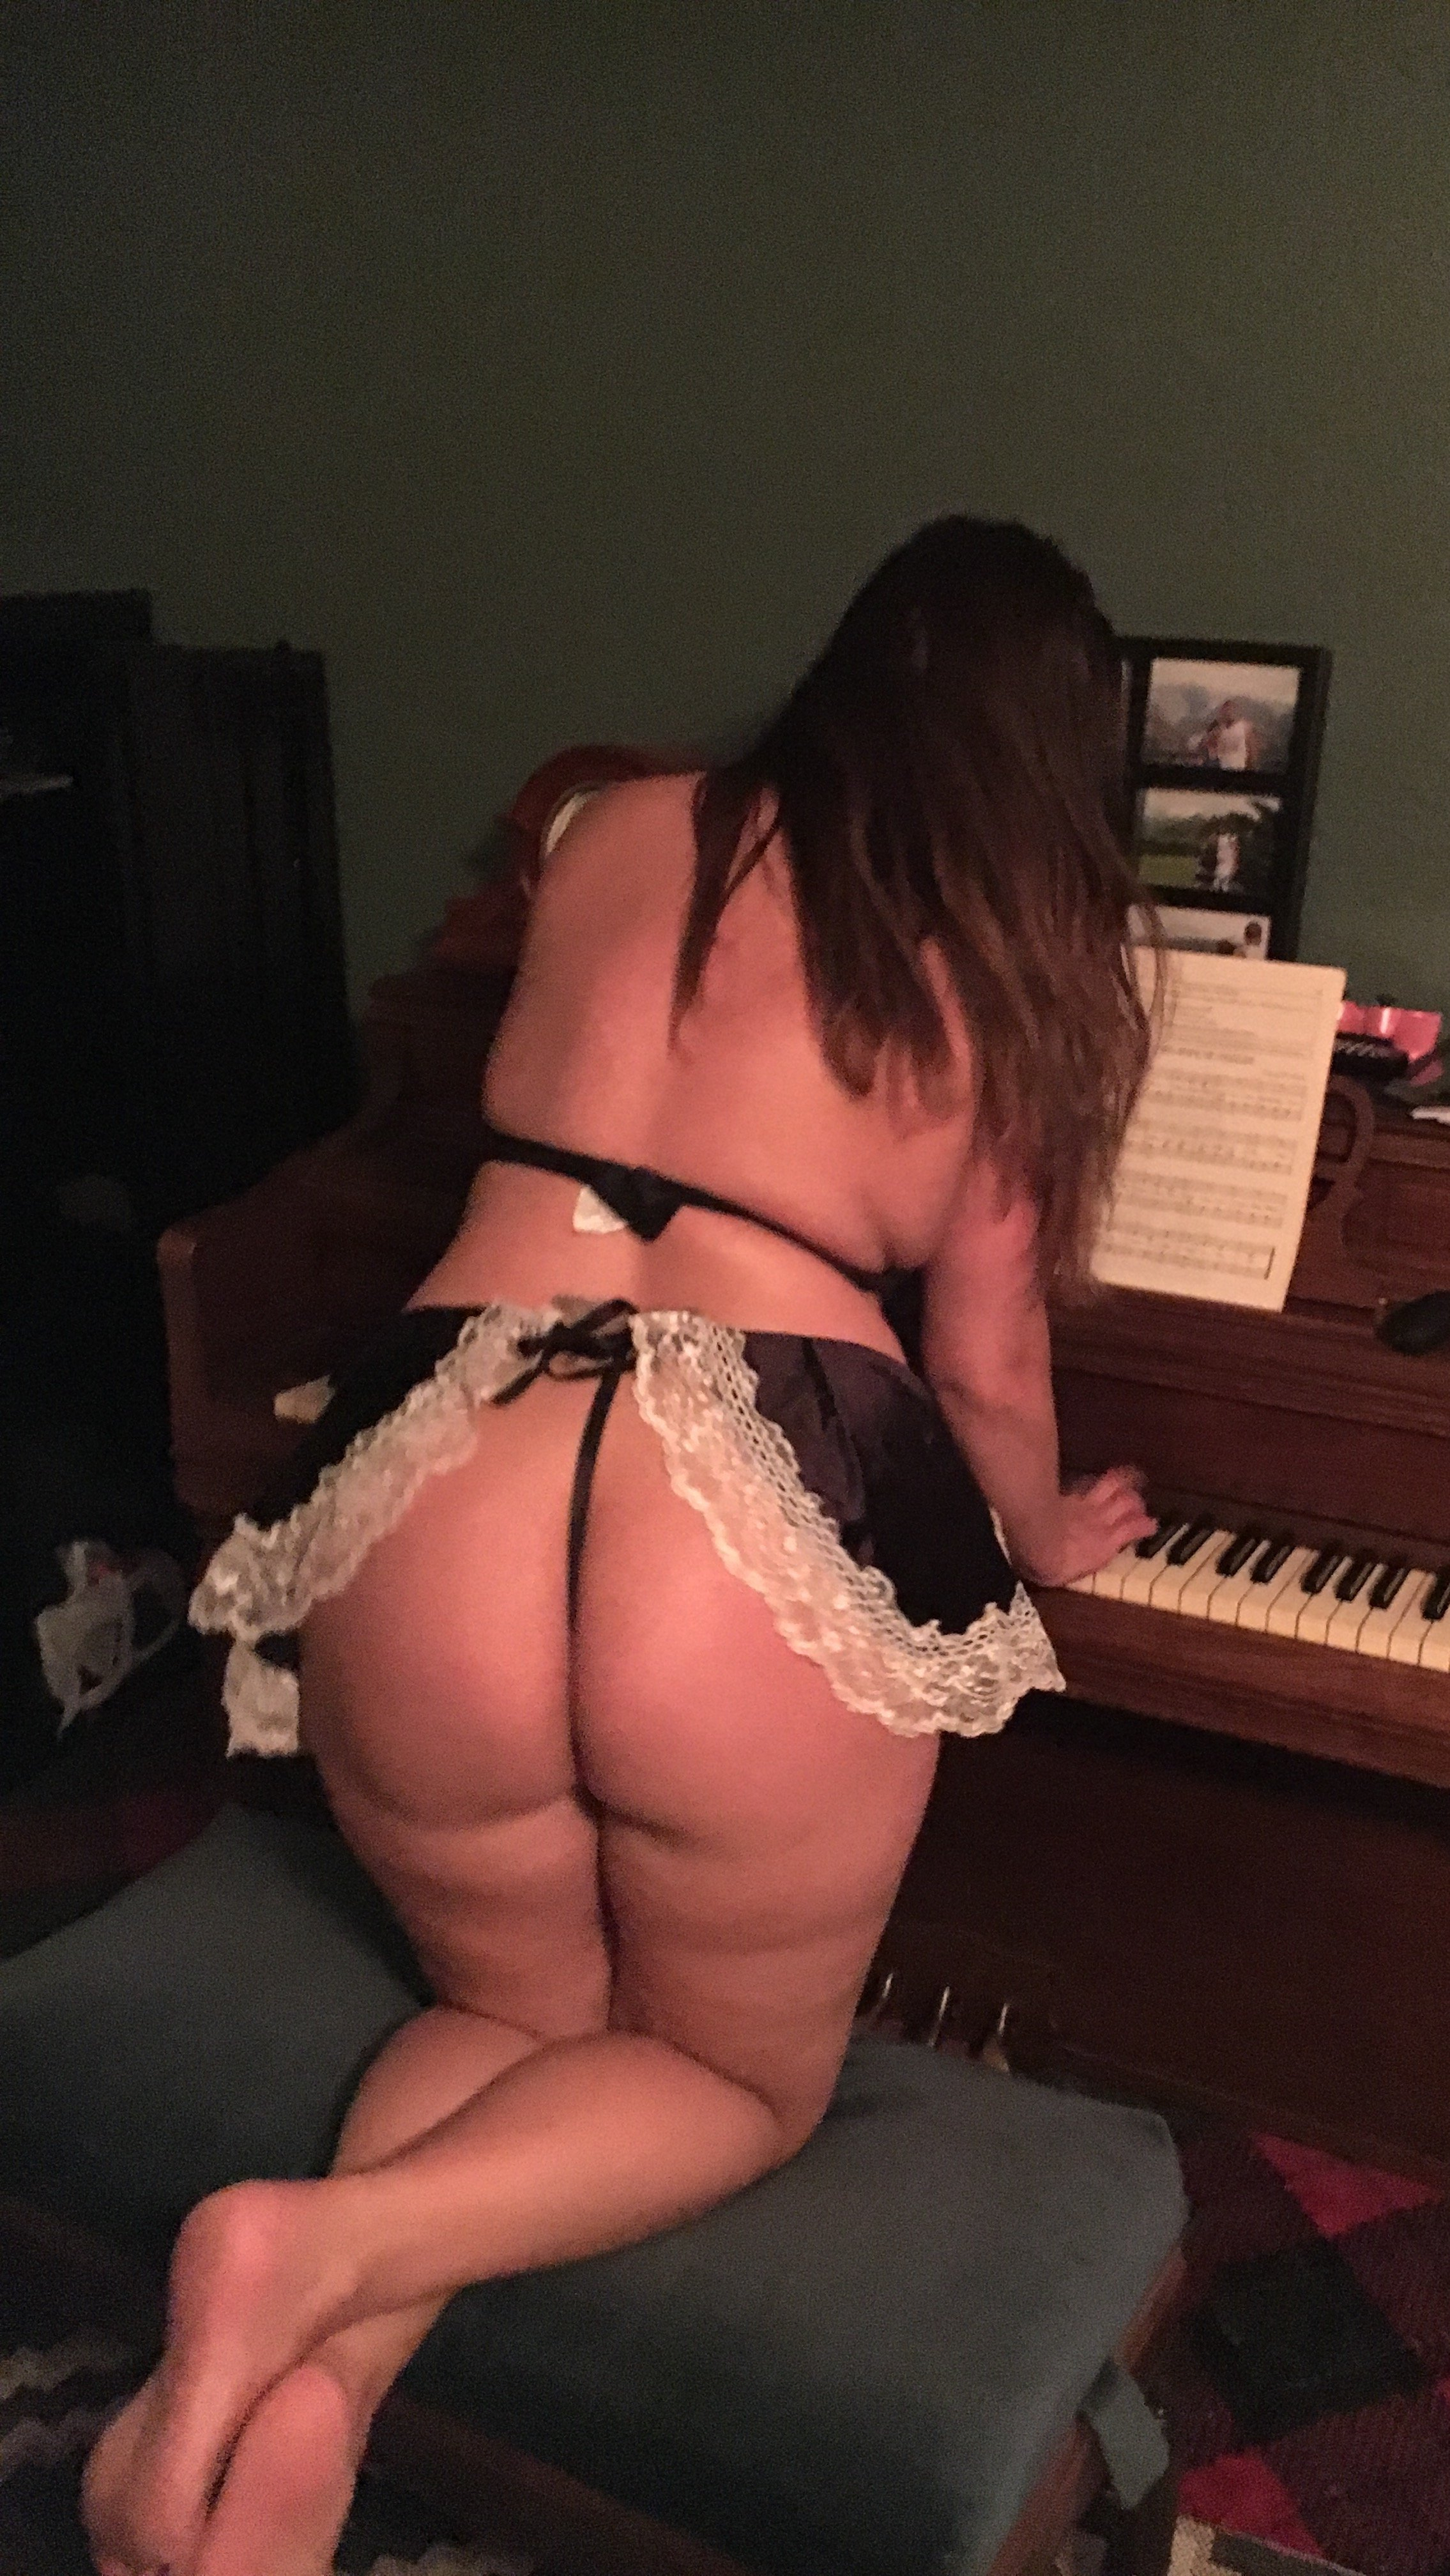 Mmf wife videos Jayden jaymes the housewife desperate for cock